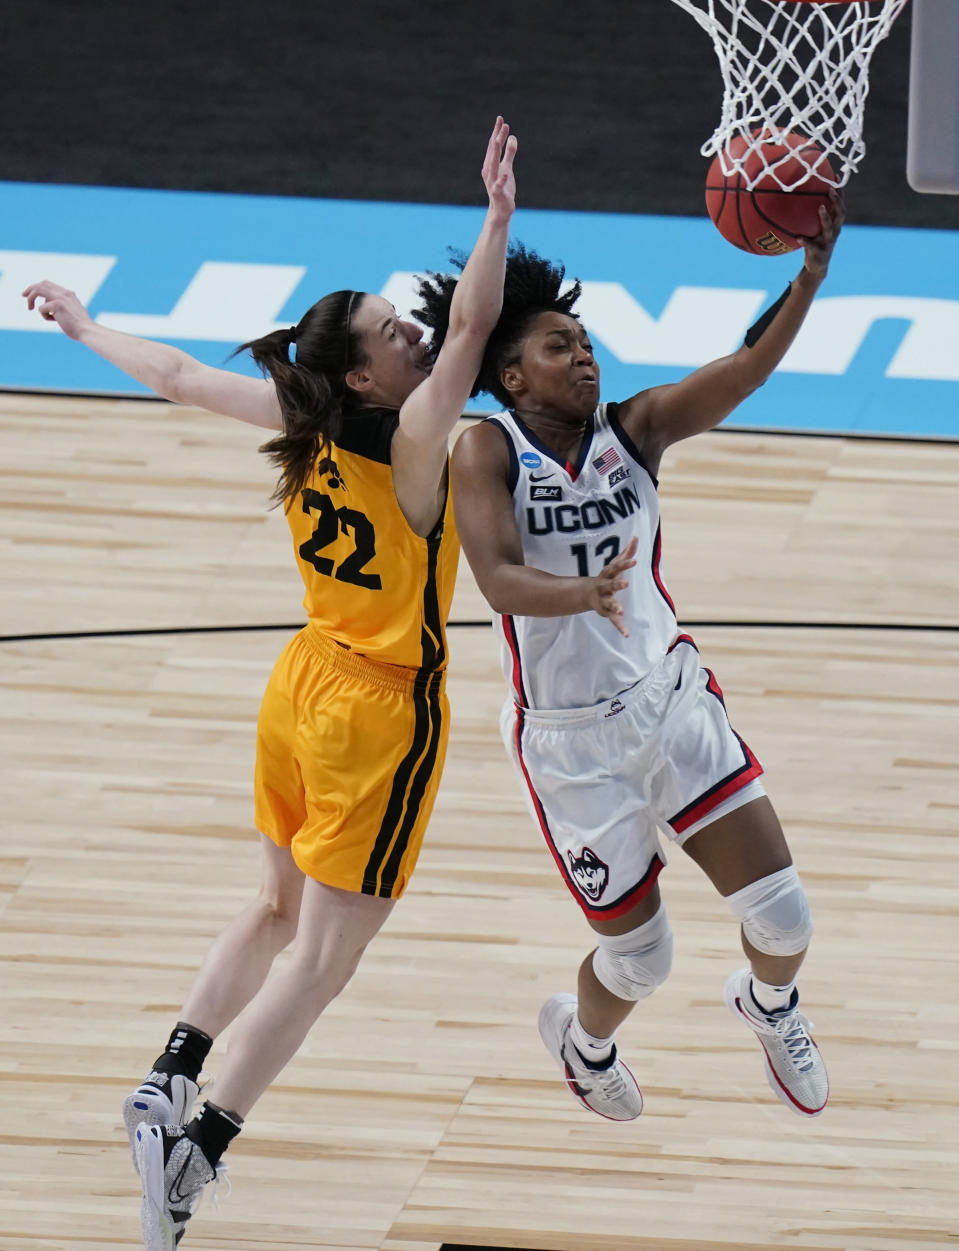 UConn guard Christyn Williams (13) scores past Iowa guard Caitlin Clark (22) during the first half of a college basketball game in the Sweet Sixteen round of the women's NCAA tournament at the Alamodome in San Antonio, Saturday, March 27, 2021. (AP Photo/Eric Gay)